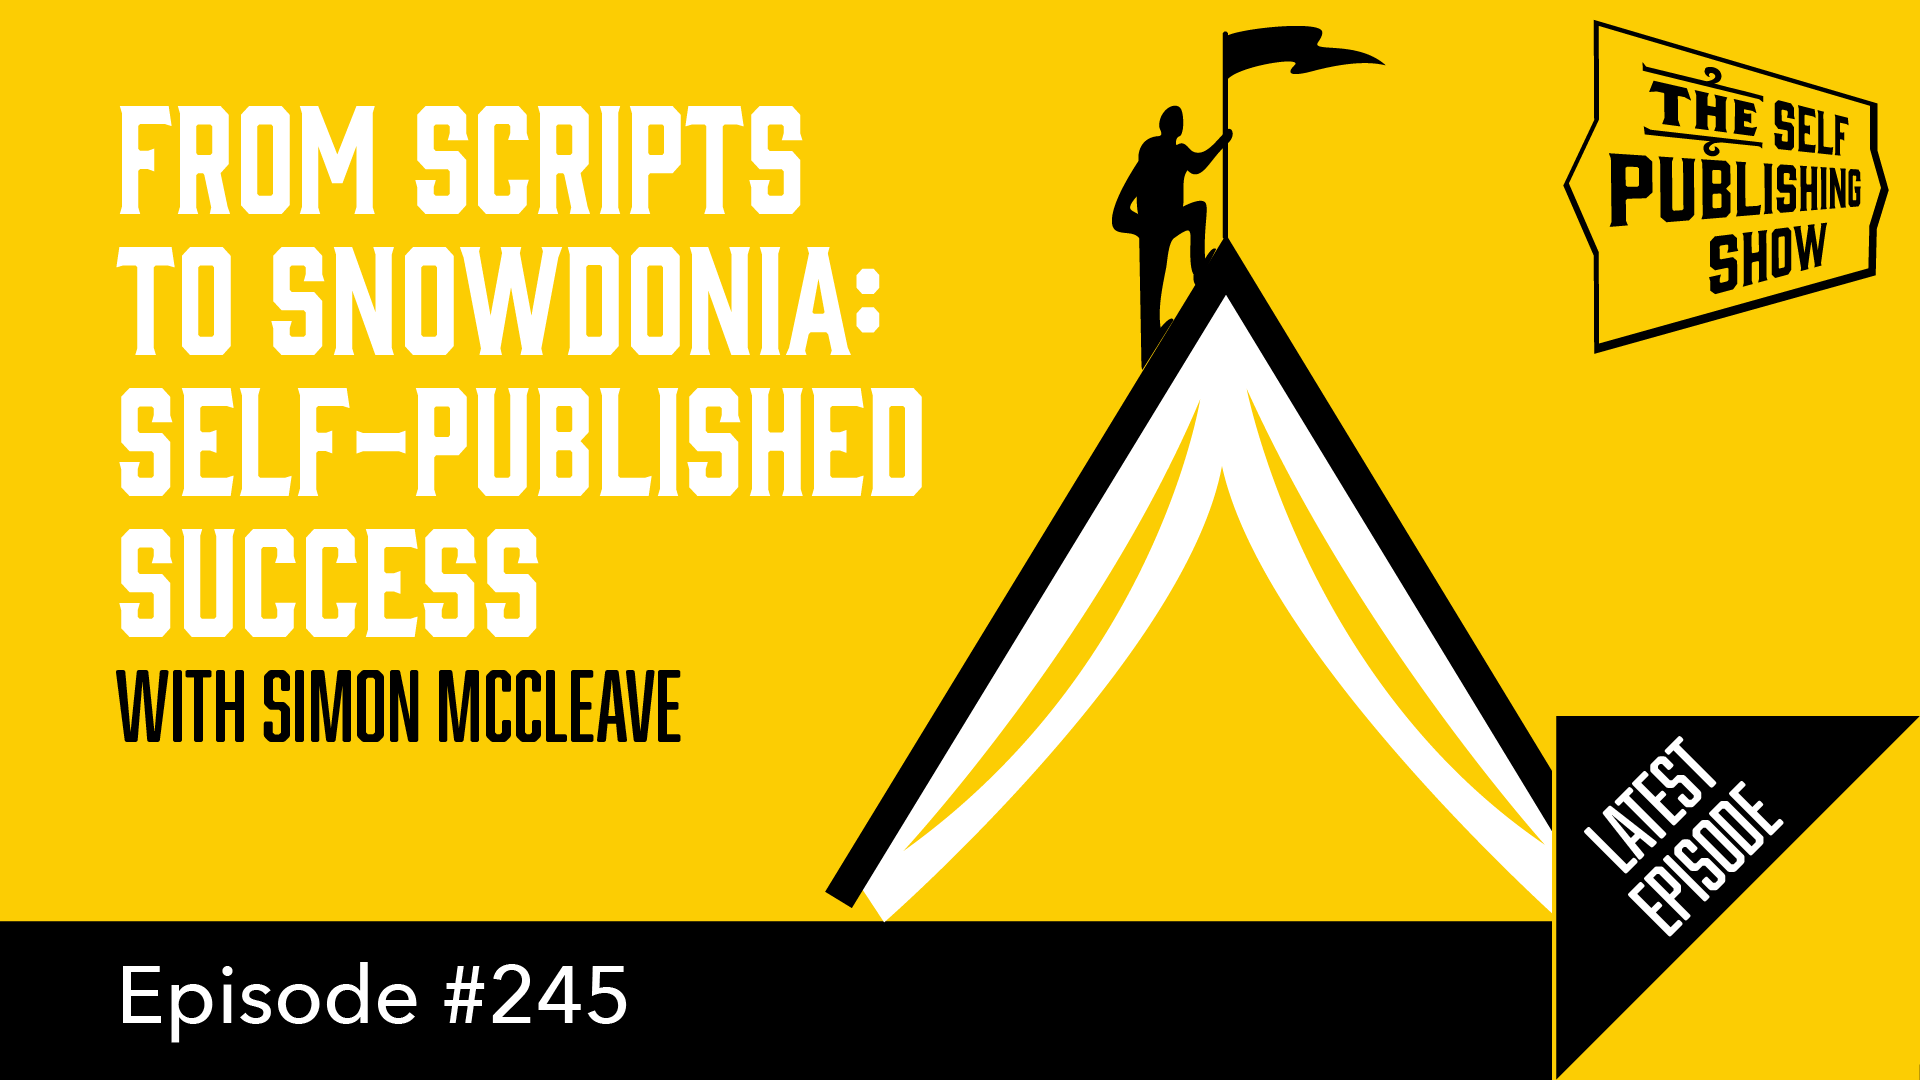 SPS-245: From Scripts to Snowdonia: Self-Published Success – with Simon McCleave